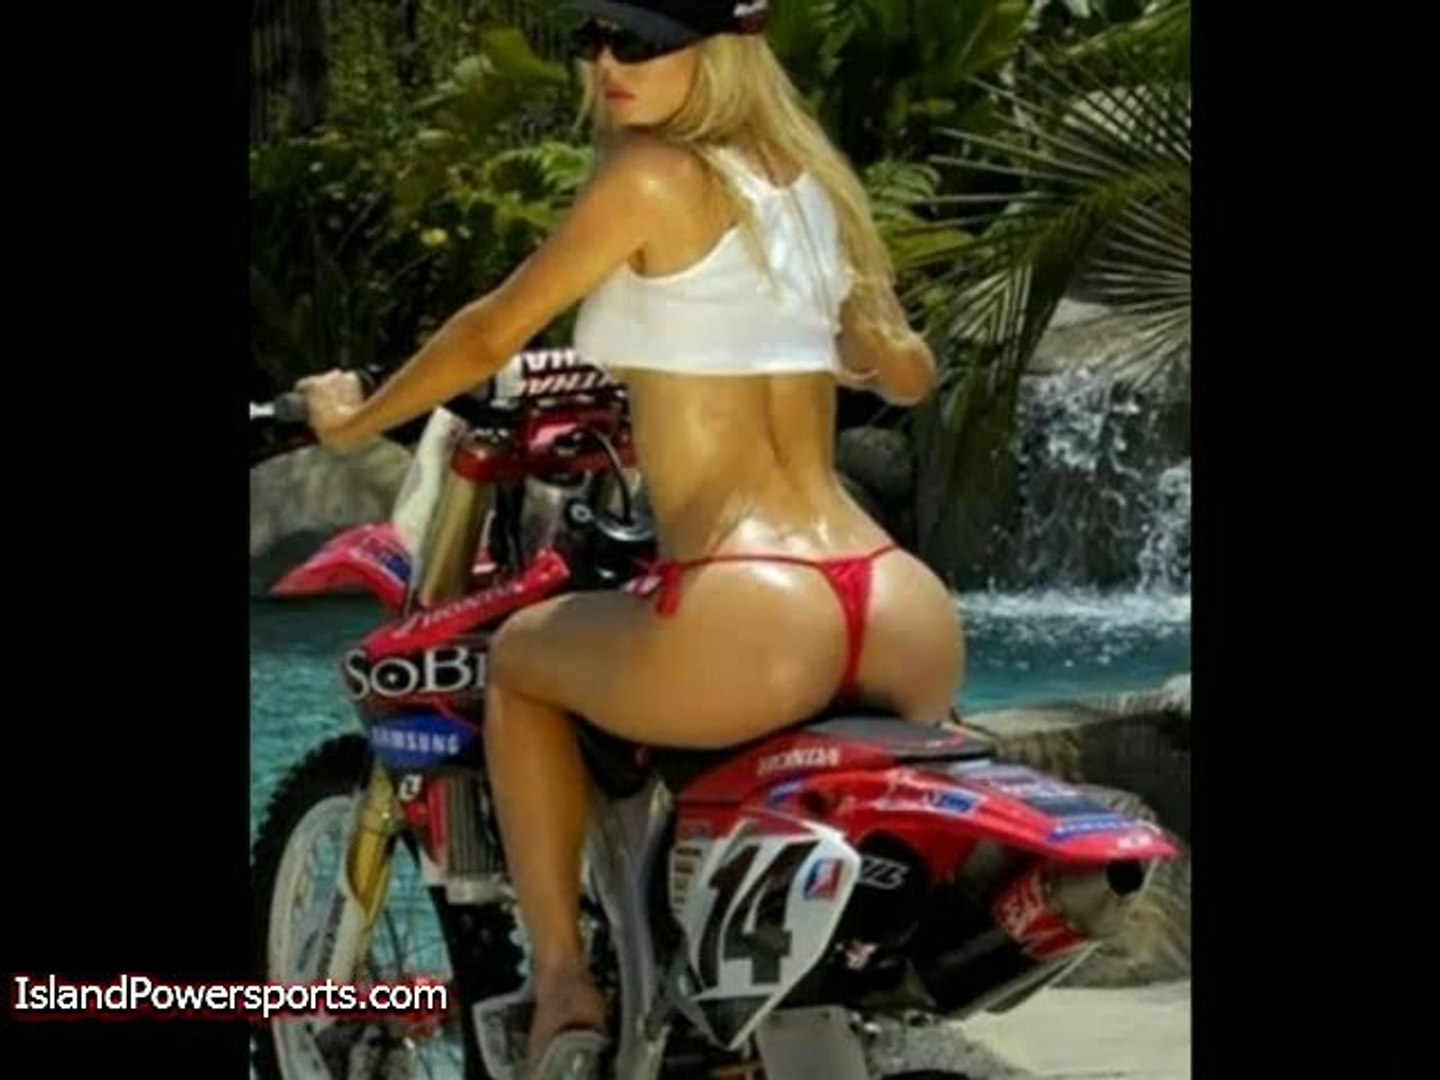 Models Riding Motorcycles!